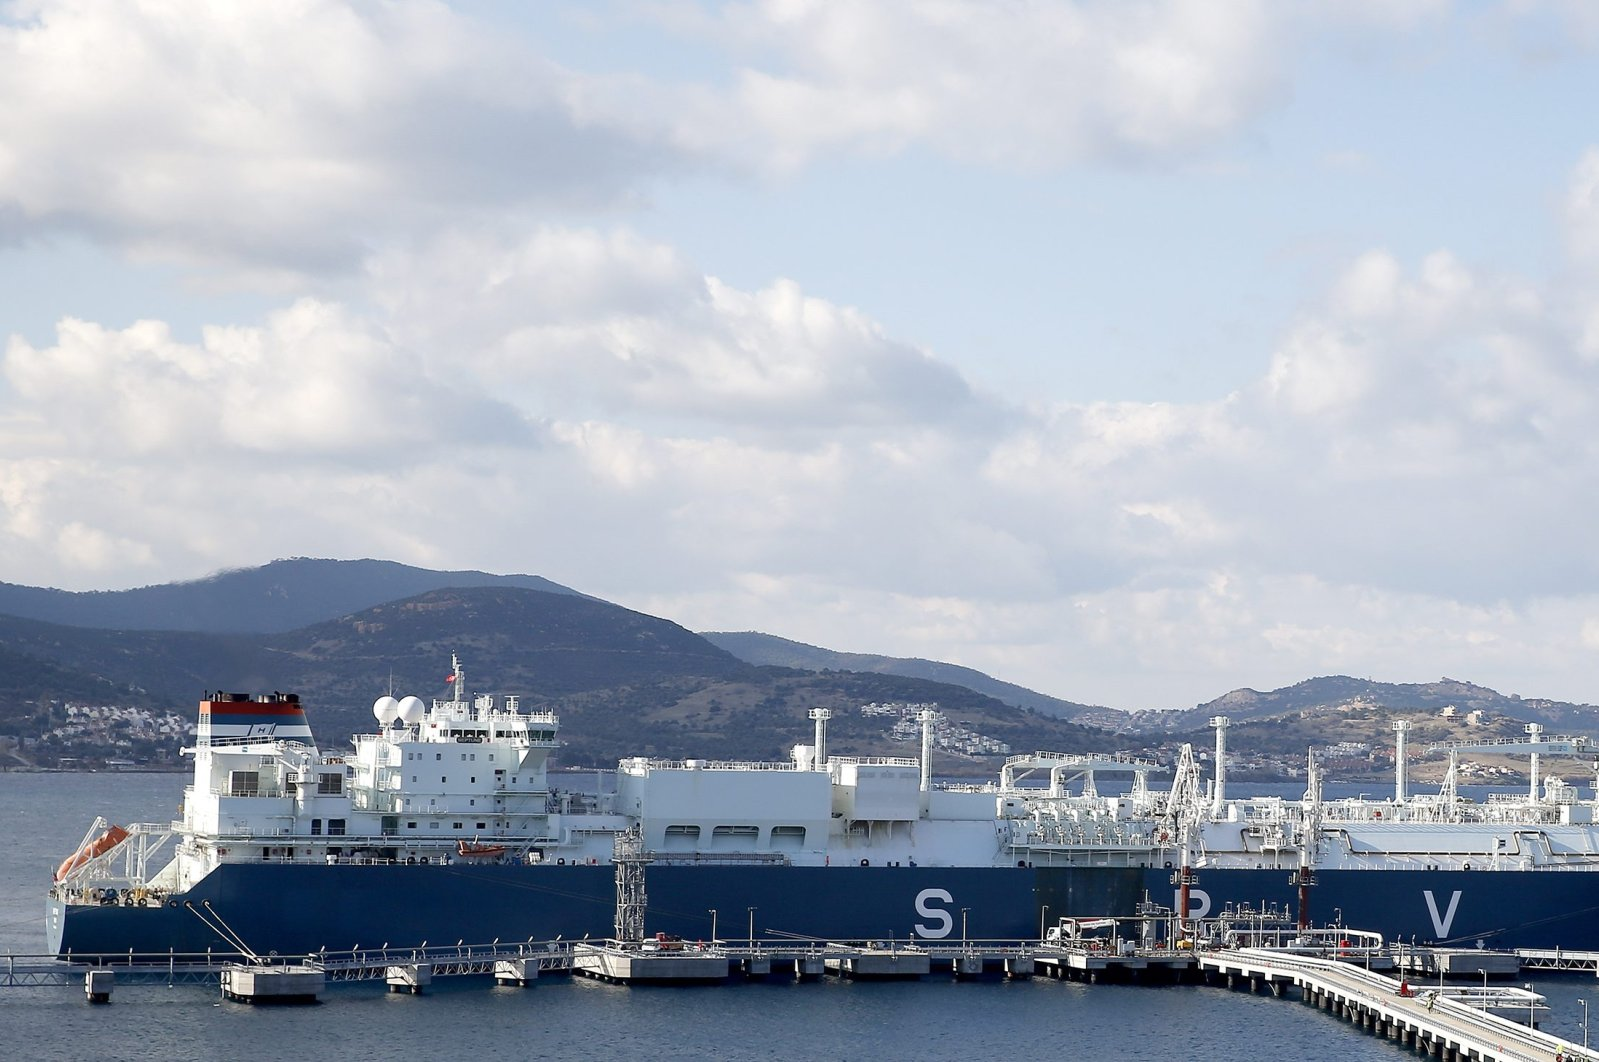 GDF Suez Neptune, a floating storage regasification facility (FSRU) that is among Turkey's LNG investments made in recent years, seen docked in the Aliağa district of western Izmir province, Turkey, Dec. 15, 2016. (AA Photo)